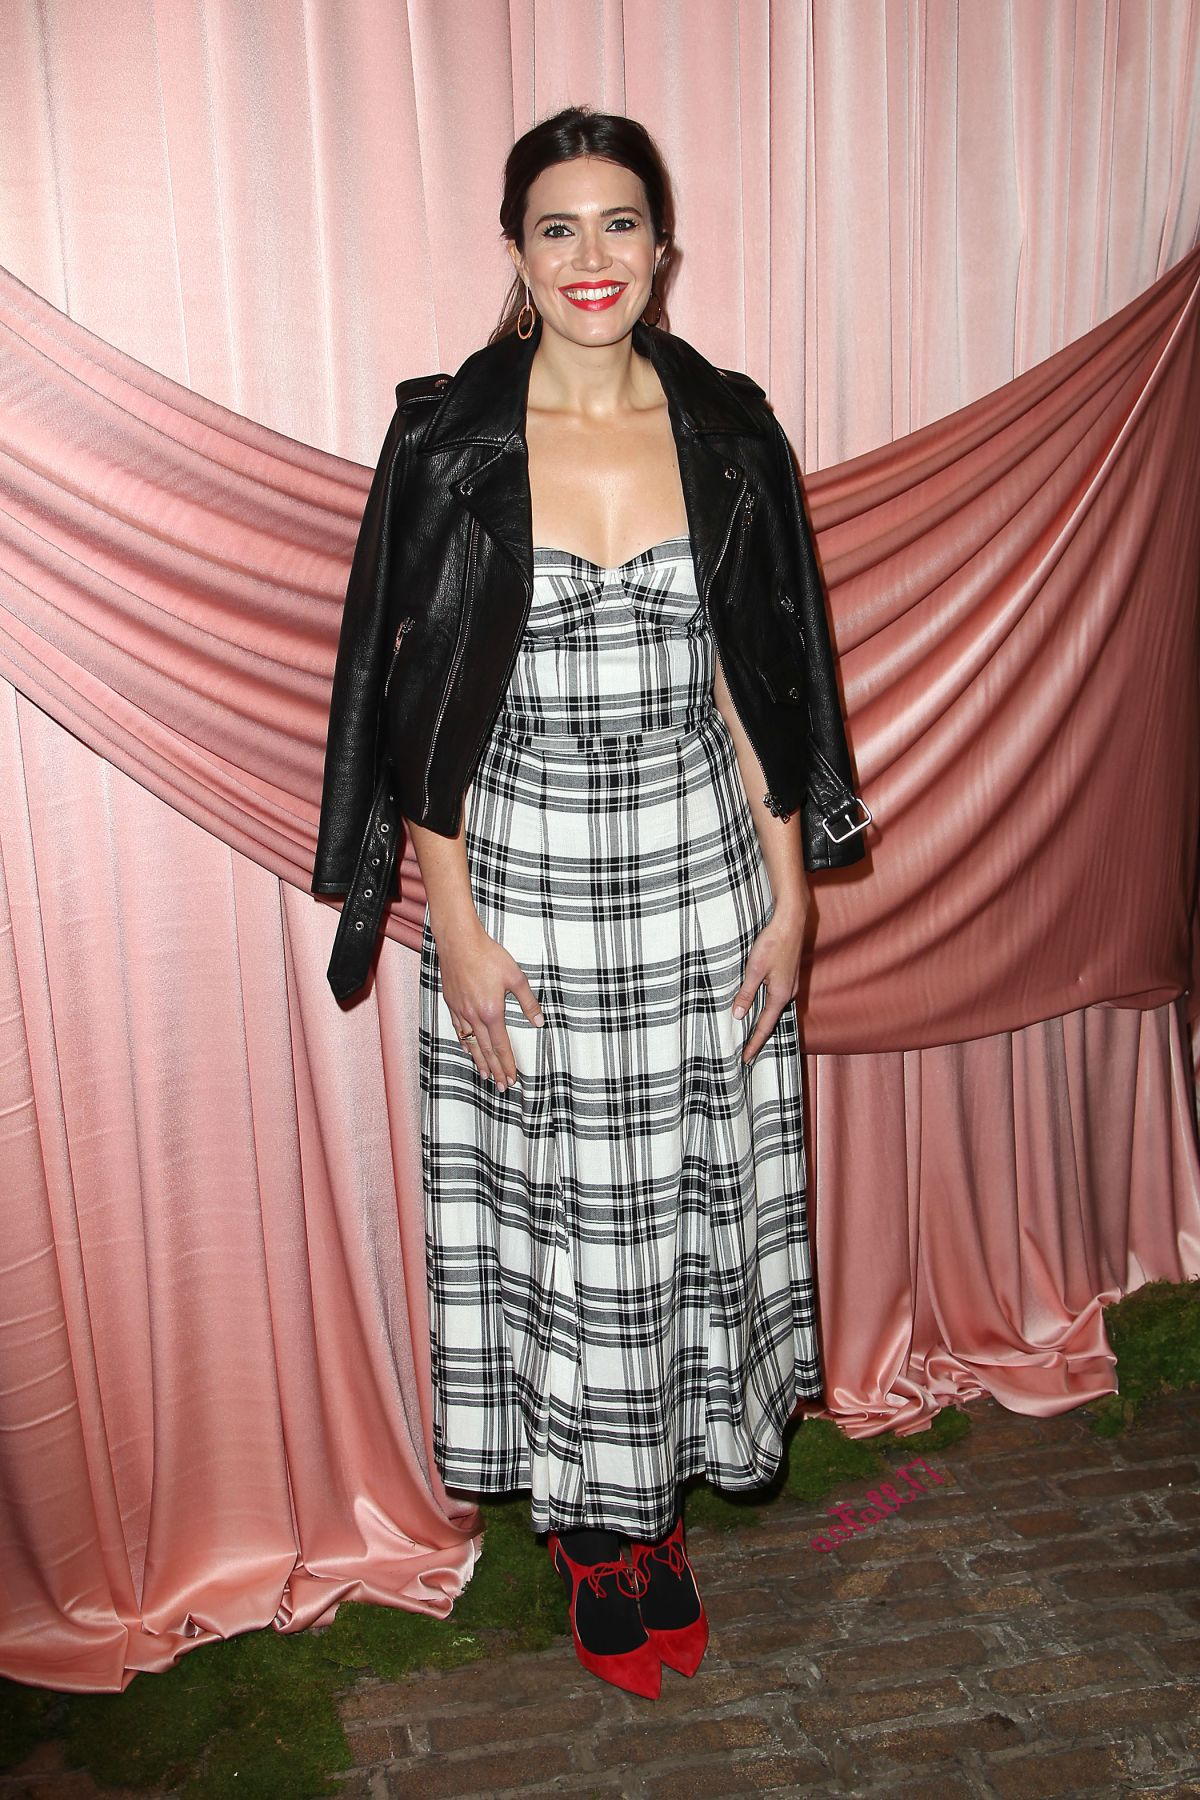 MANDY MOORE at Aice+Olivia by Stacey Bendet Presentation in New York 02/14/2017   mandy-moore-at-aice-olivia-by-stacey-bendet-presentation-in-new-york-02-14-2017_7